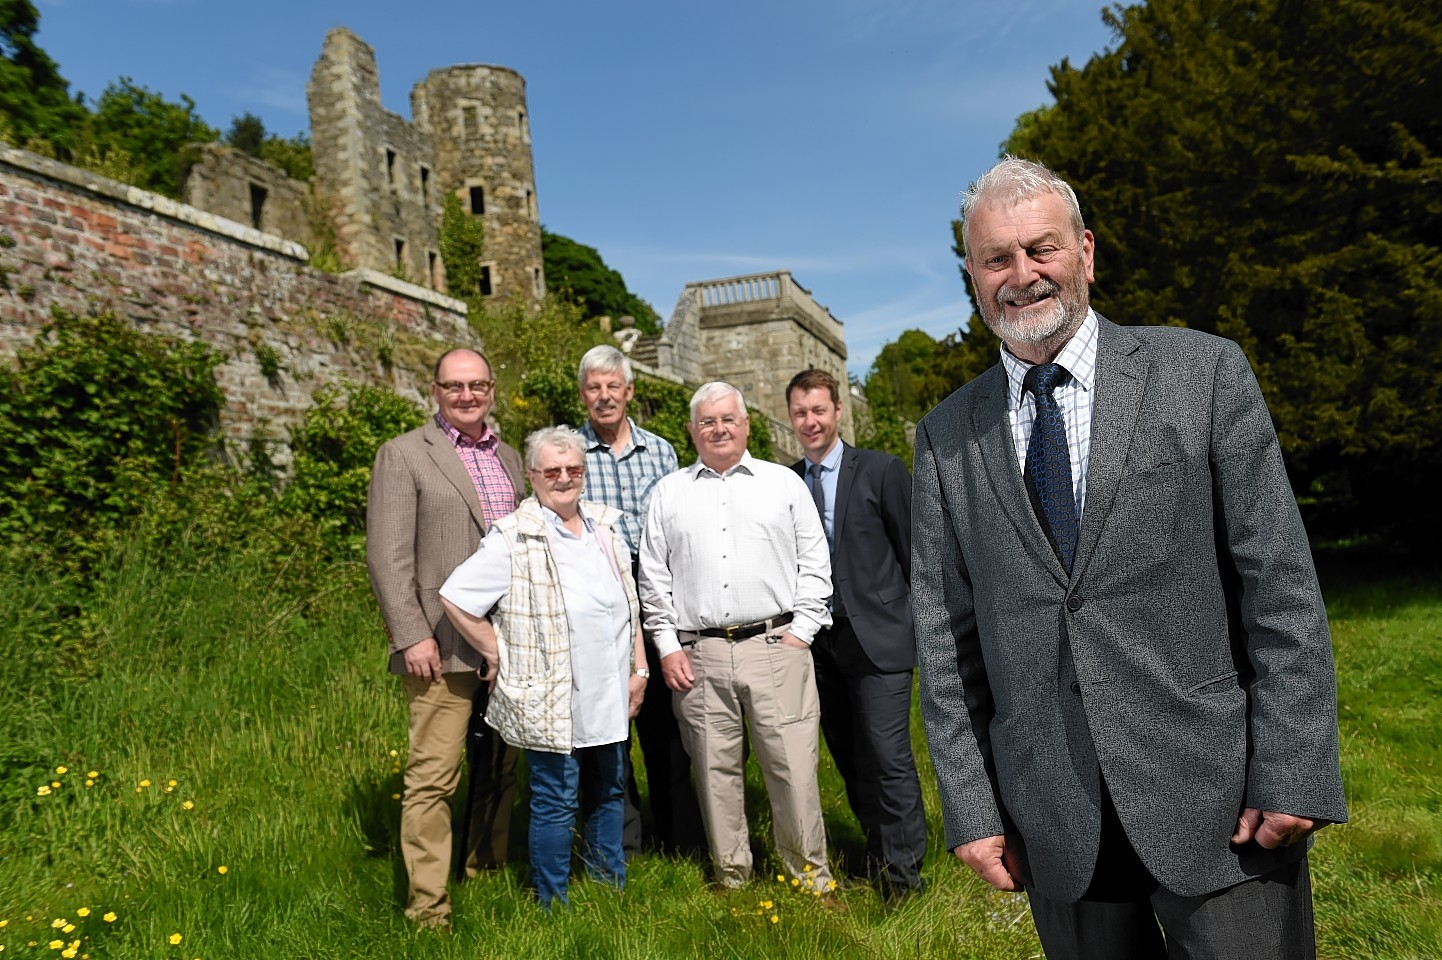 Ellon Castle Gardens has been handed over to the community